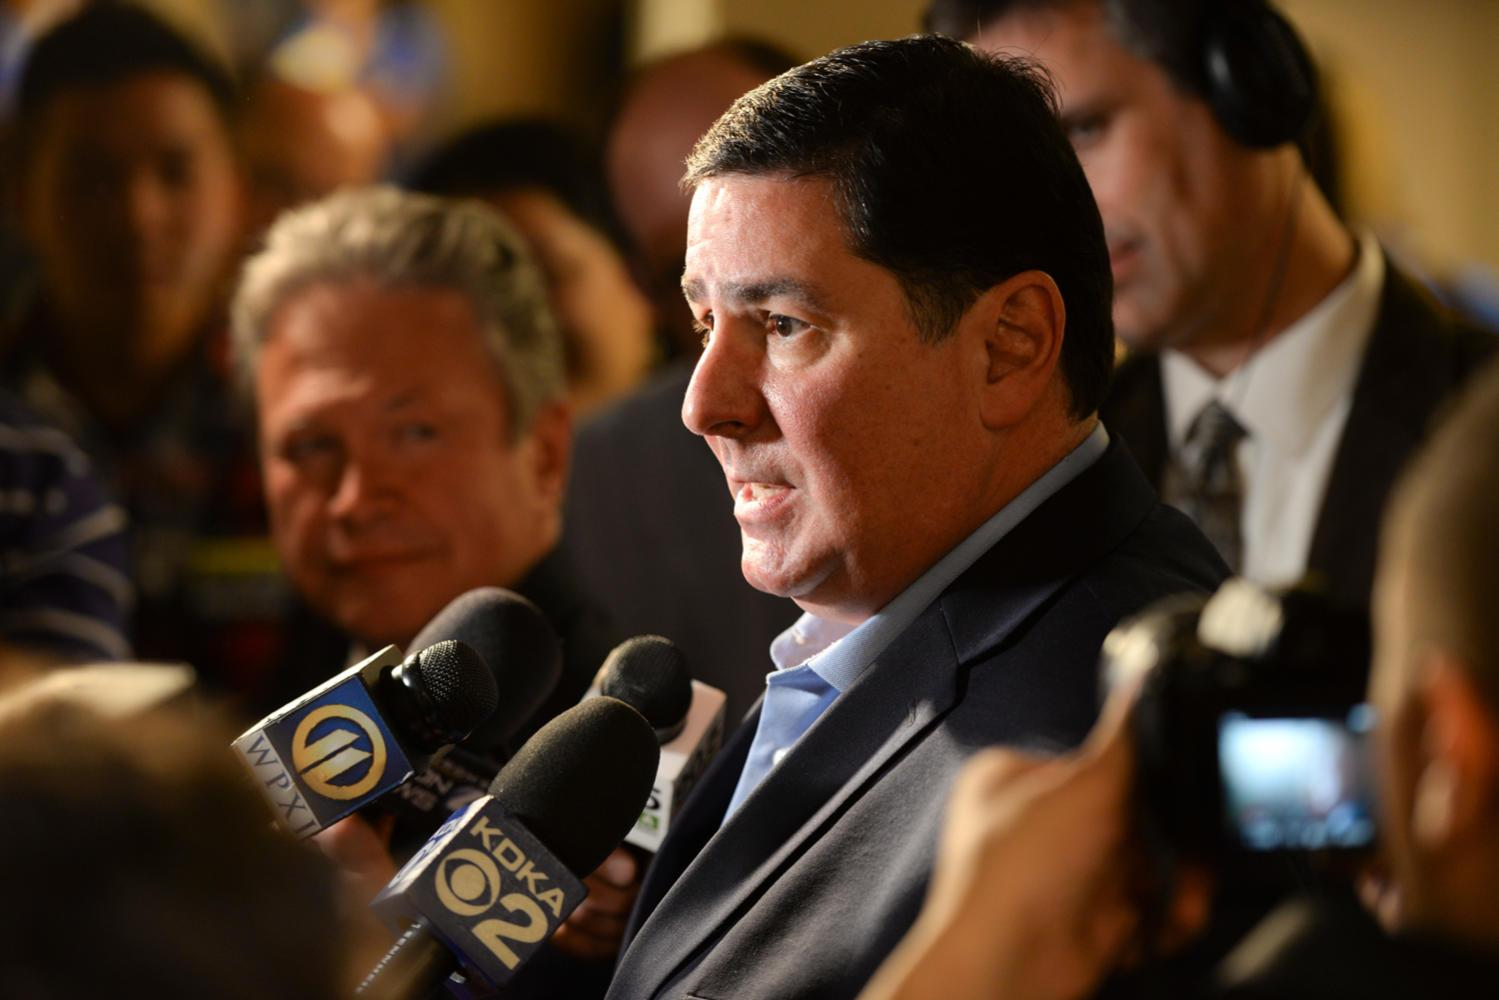 Mayor Bill Peduto is optimistic about the possibilities Amazon could bring to Pittsburgh. (Photo by Anna Bongardino | Senior Staff Photographer)